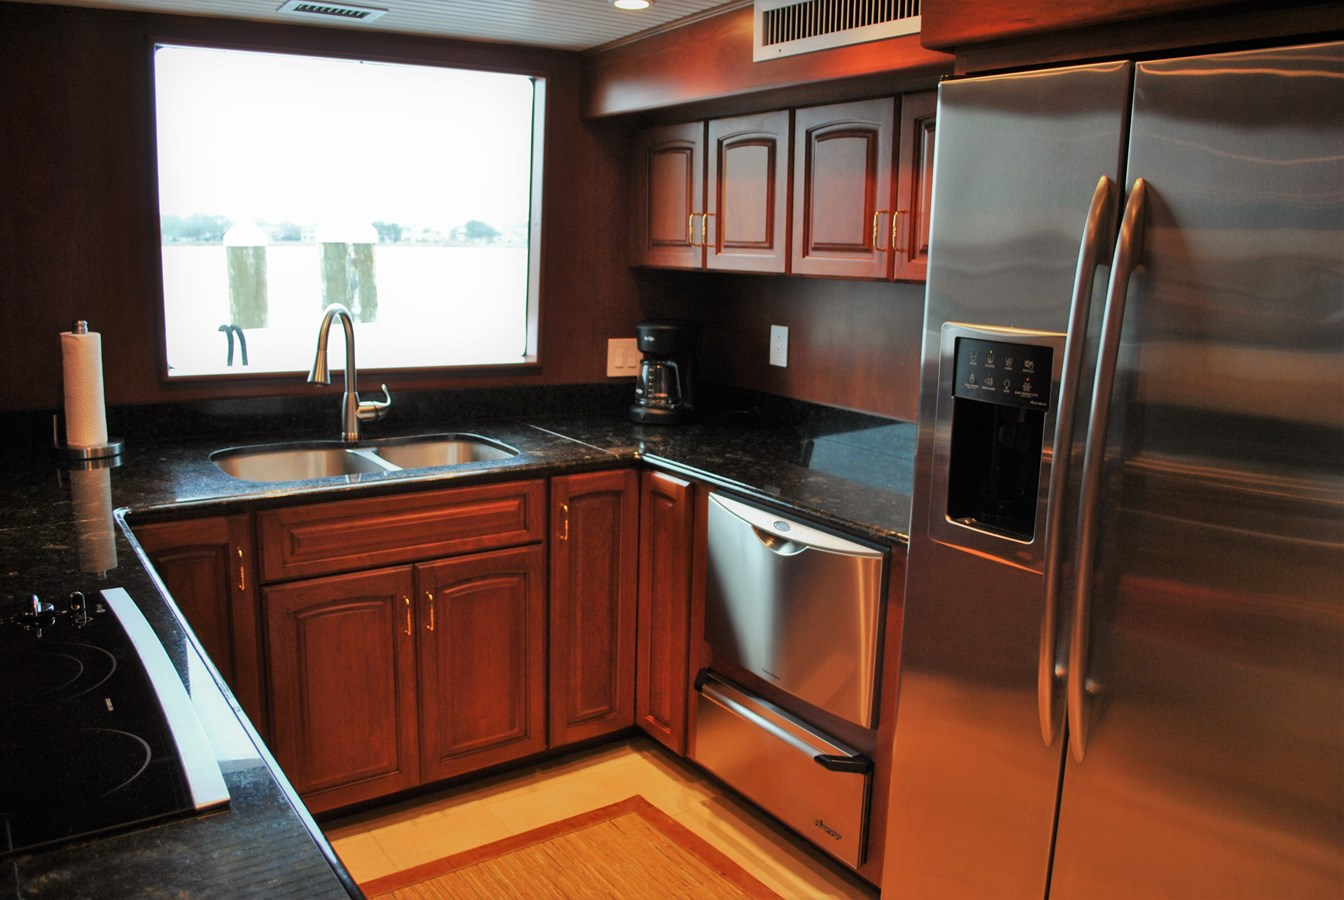 Galley 2006 VOYAGER Tri-deck Motor Yacht 2854331